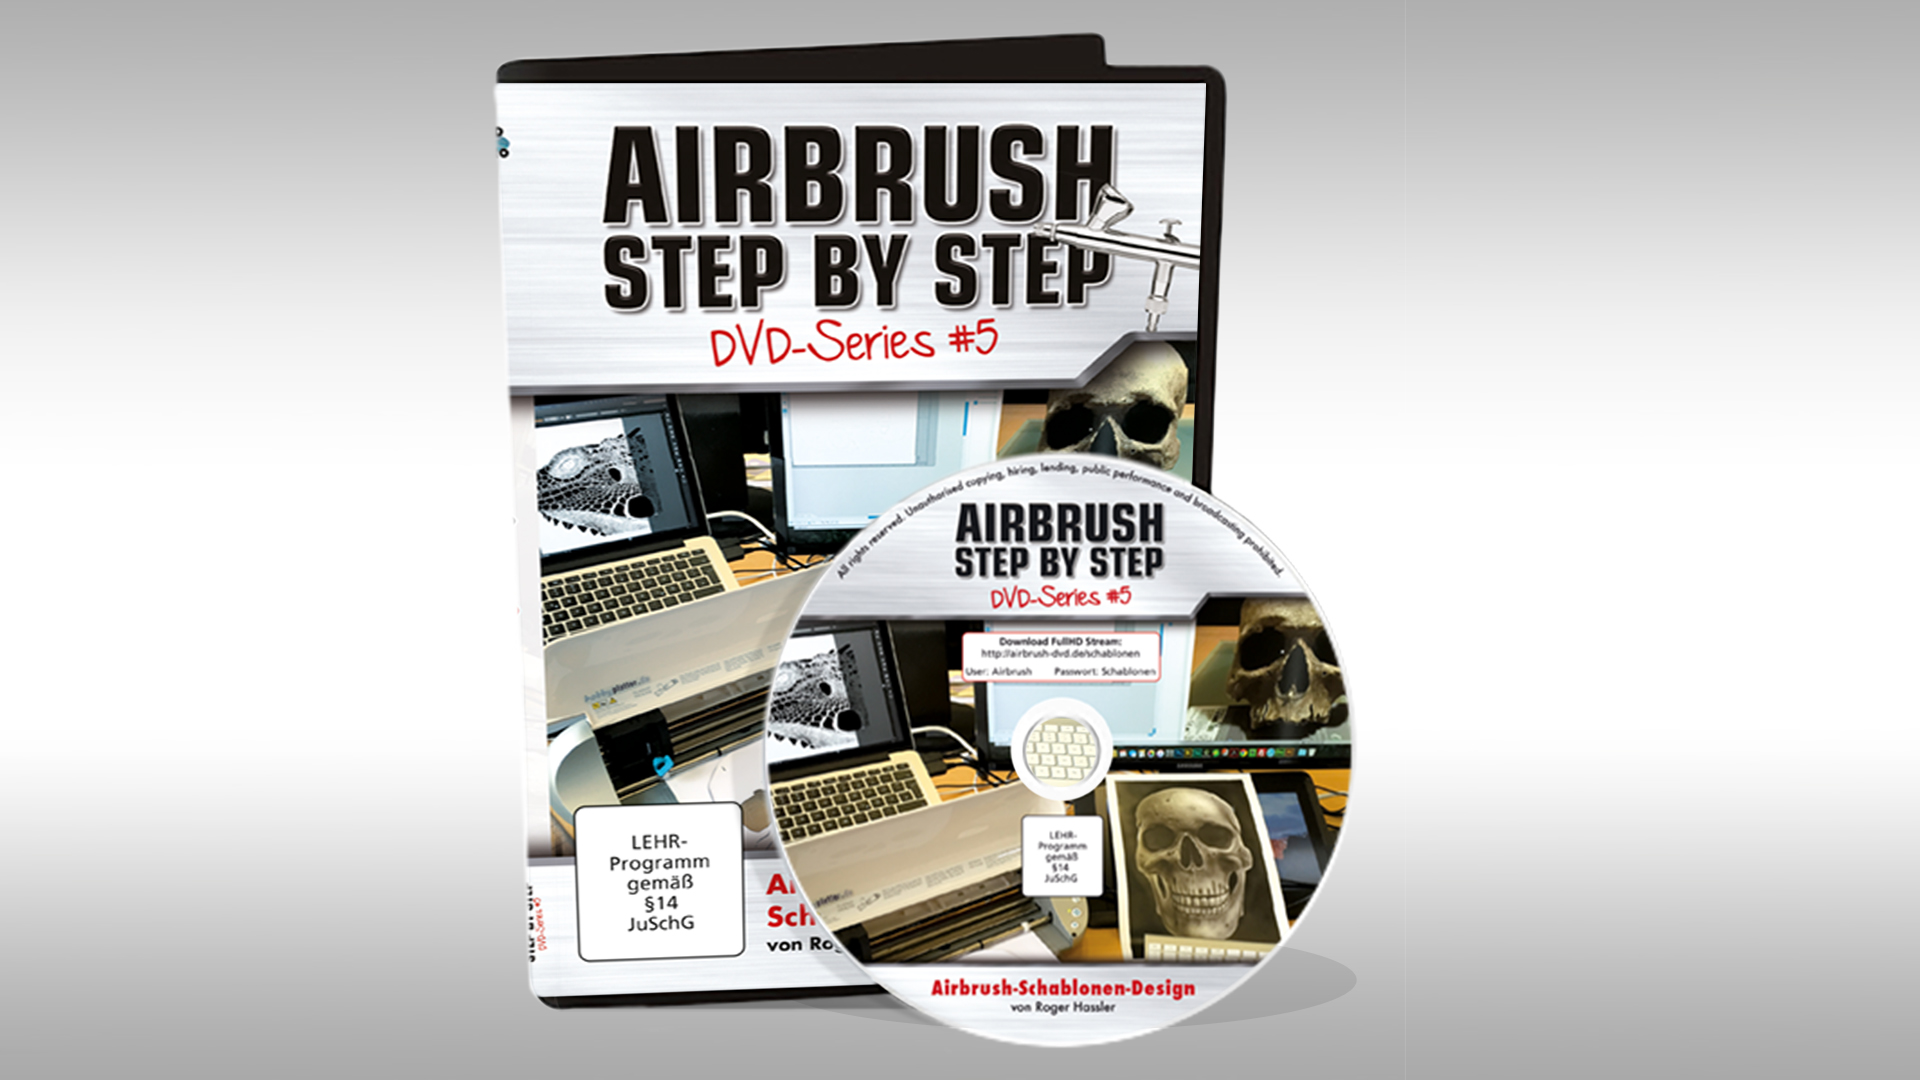 airbrush schablonen design runde 5 f r die asbs dvd series airbrush step by step magazin. Black Bedroom Furniture Sets. Home Design Ideas